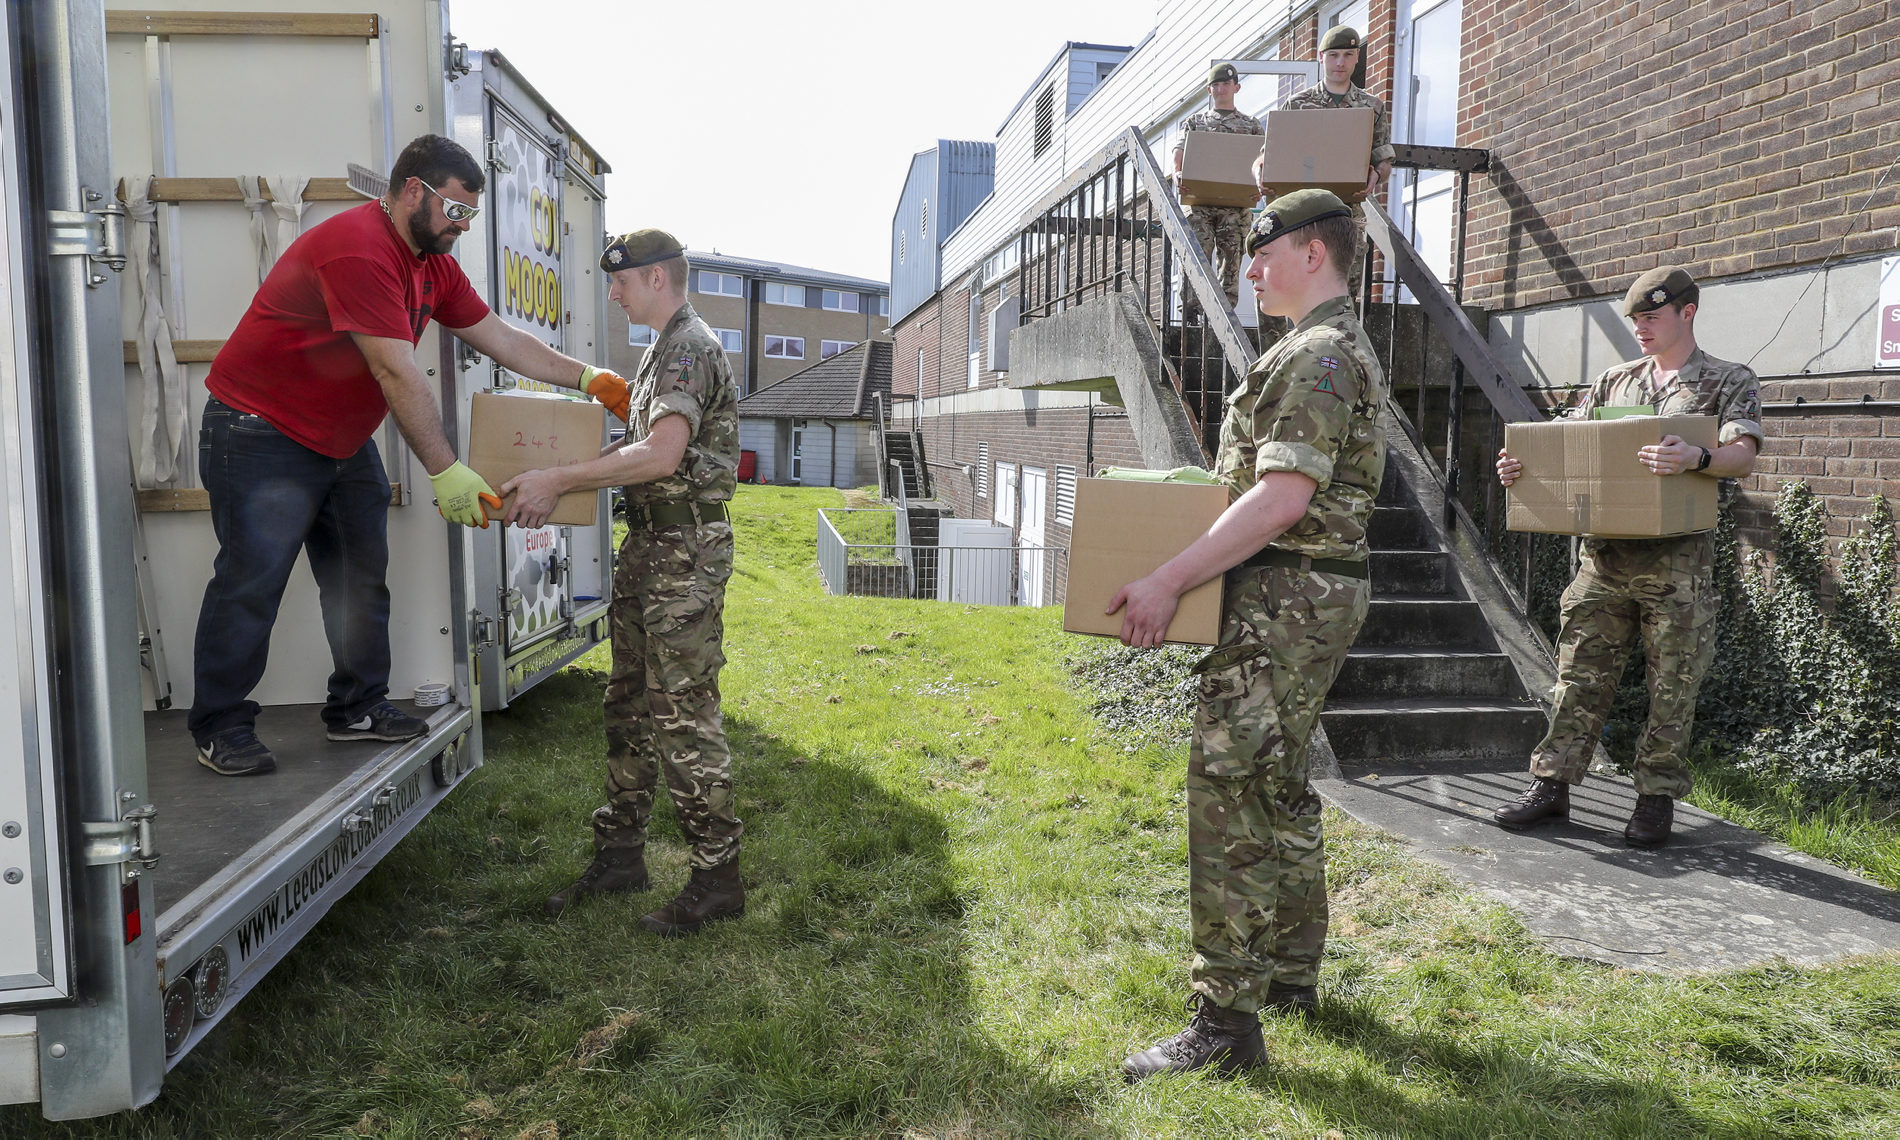 Scots guardsman assisting in helping move records at St Mary's Hospital to make space for the outbreak of covid-19.